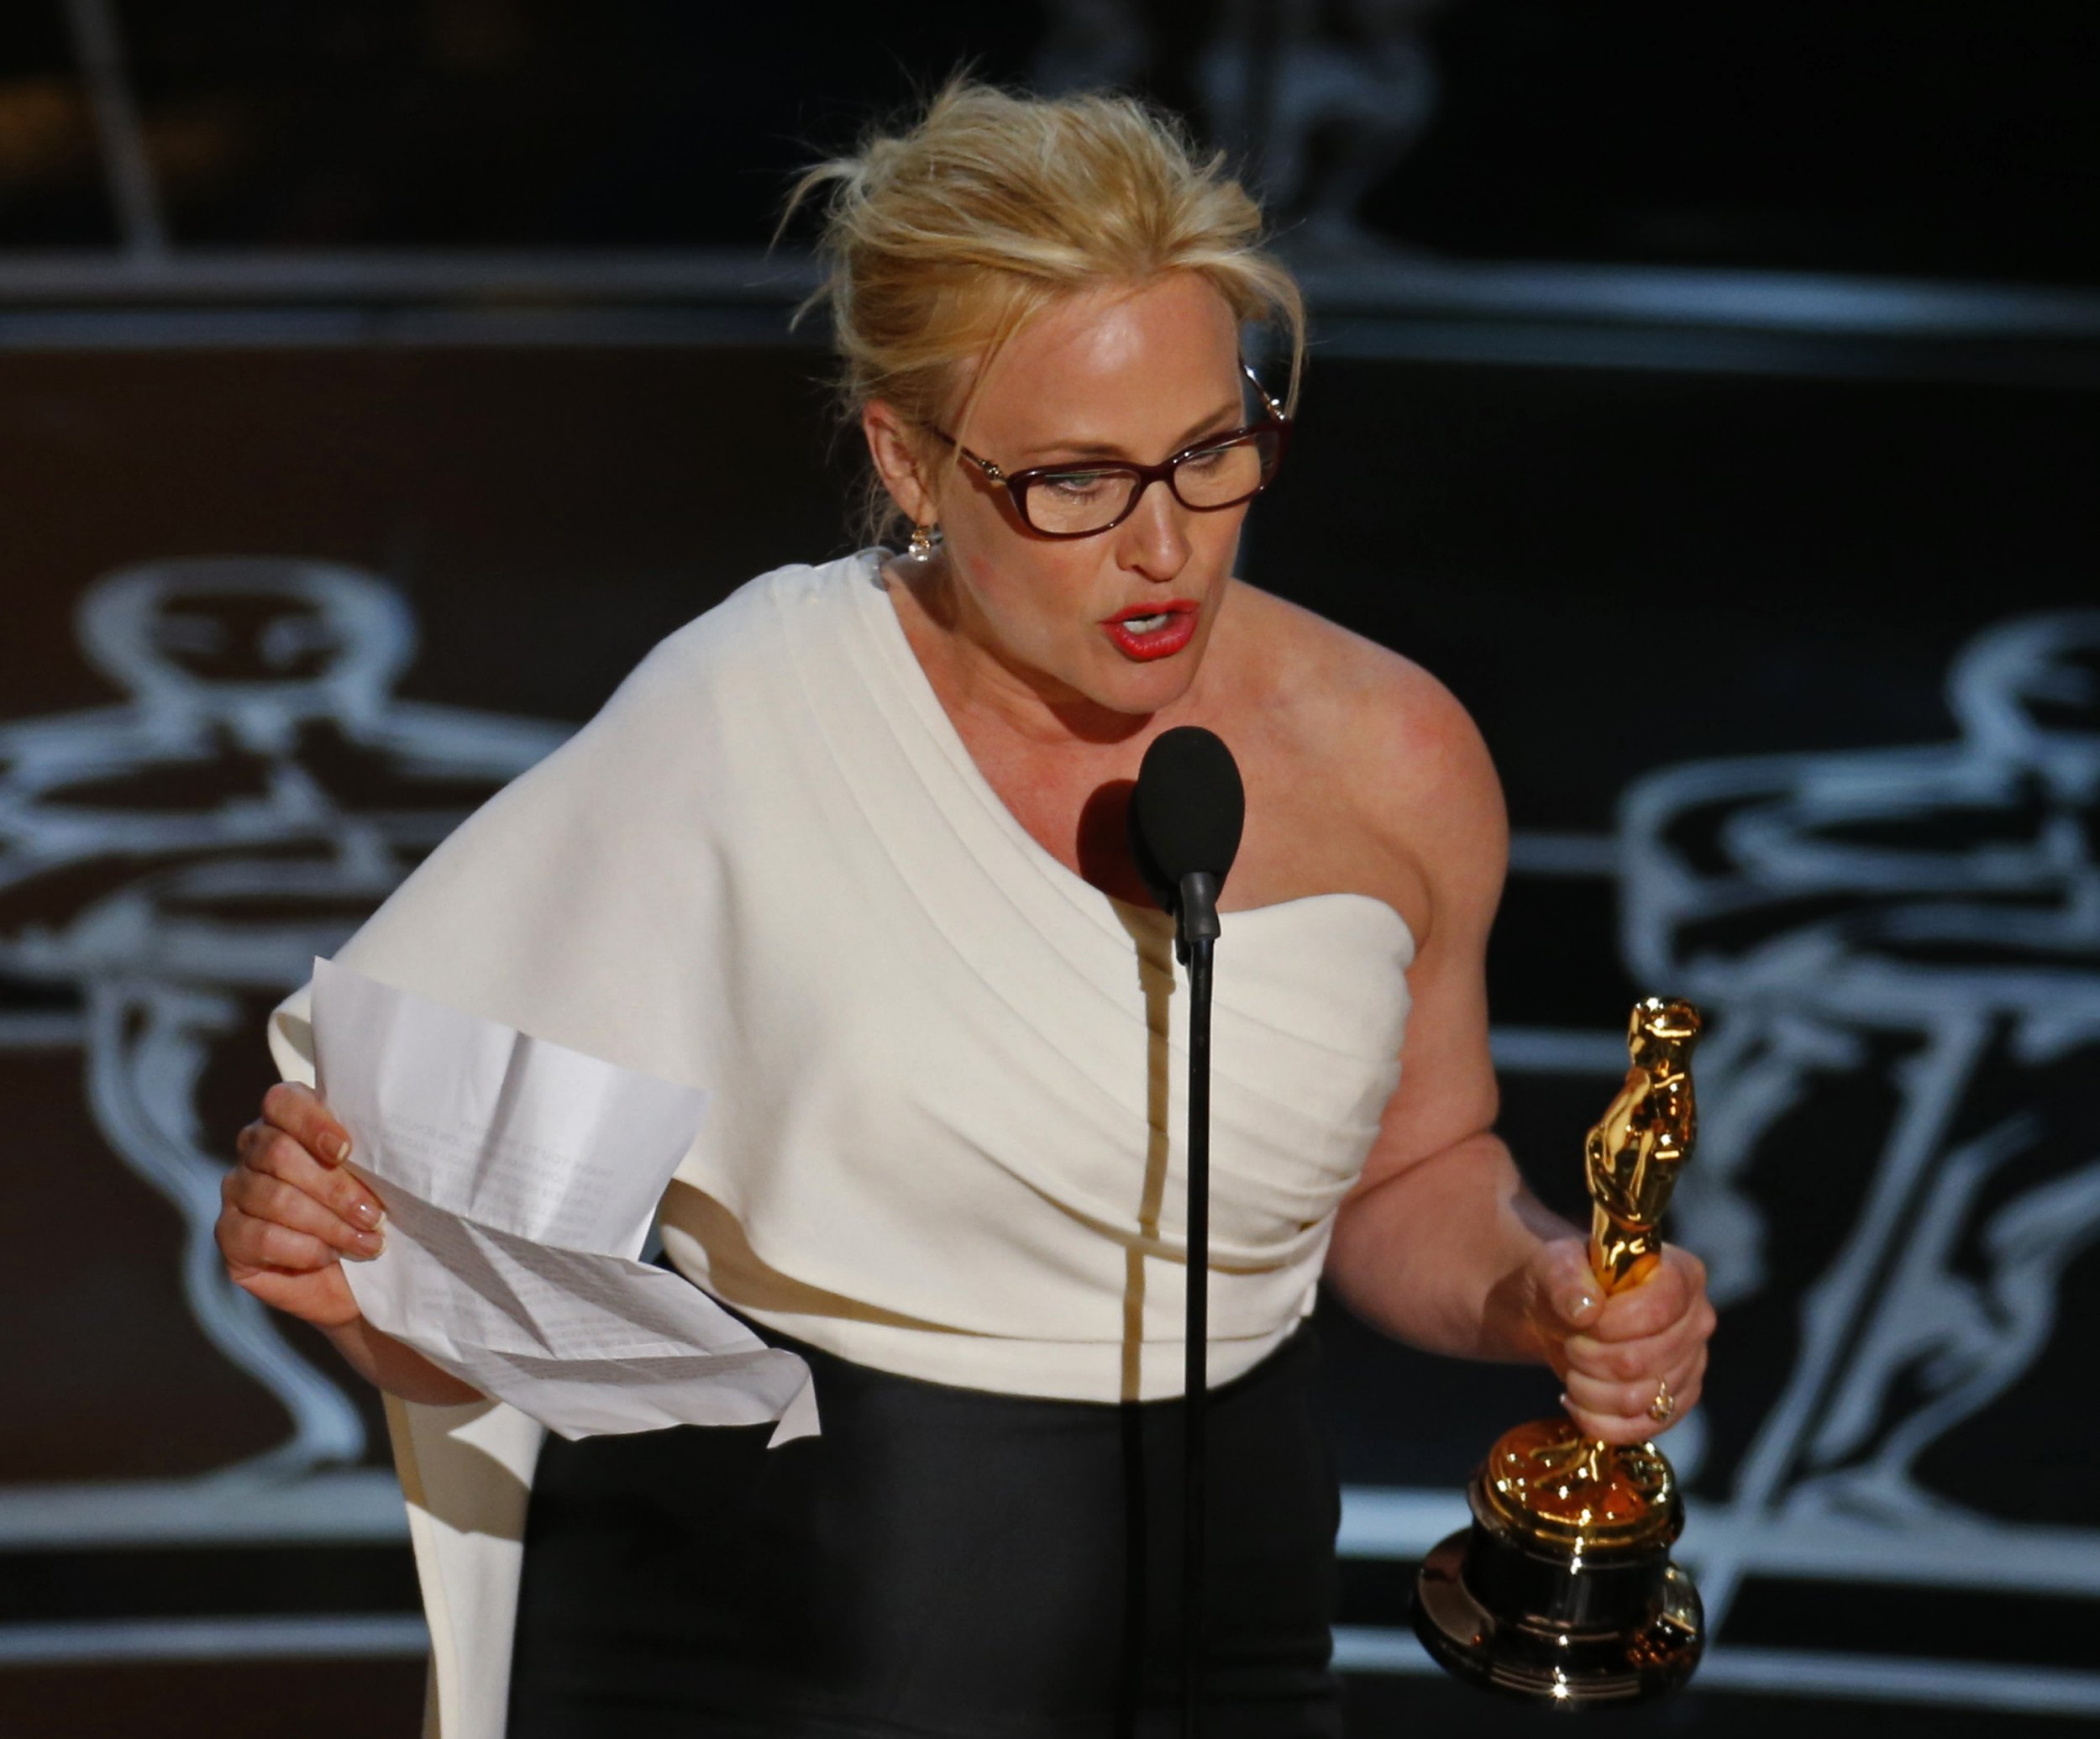 """Patricia Arquette claims she lost acting jobs because of her gender equality speech at the oscars. Patricia Arquette speaks after winning the Oscar for Best Supporting Actress for her role in """"Boyhood"""" at the 87th Academy Awards in Hollywood, California February 22, 2015. REUTERS/Mike Blake (UNITED STATES TAGS:ENTERTAINMENT) (OSCARS-SHOW) - RTR4QOOK"""